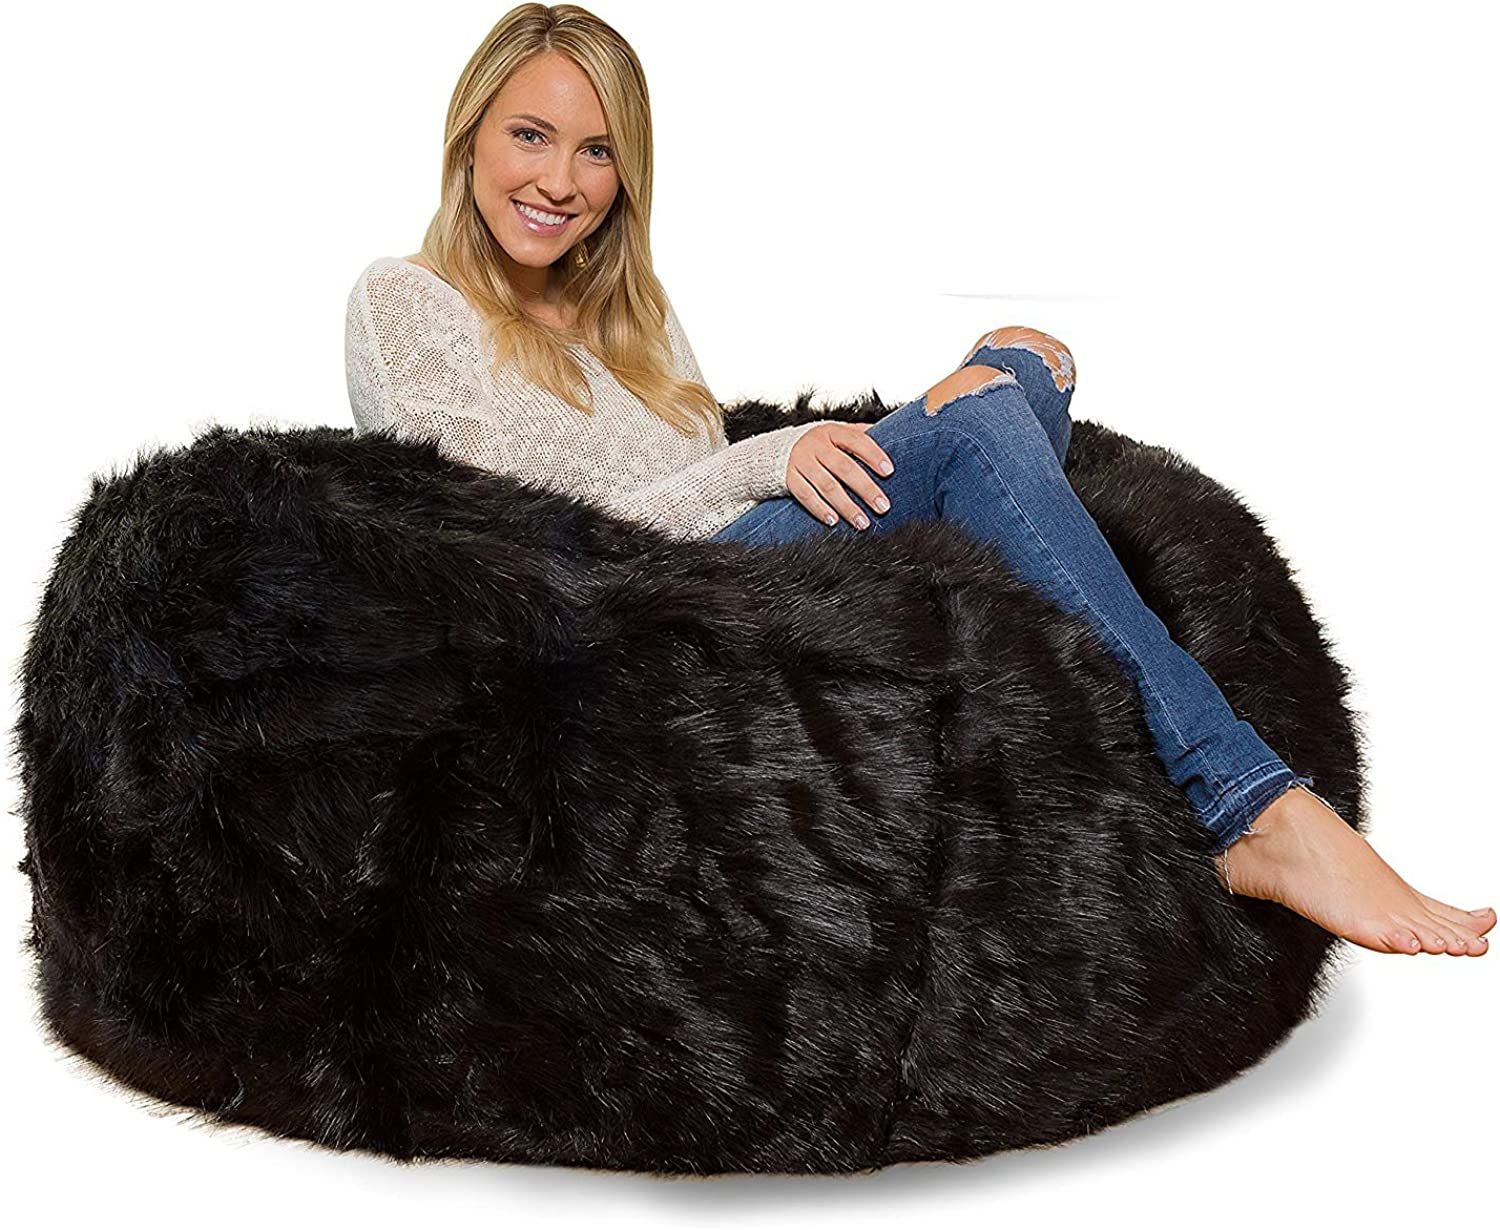 Healthybusiness1 1 PC Classic Fully Comfortable & Washable Furry Velvet Bean Bag Cover Without Beans (XXXL (54  x 54  x 36 ))